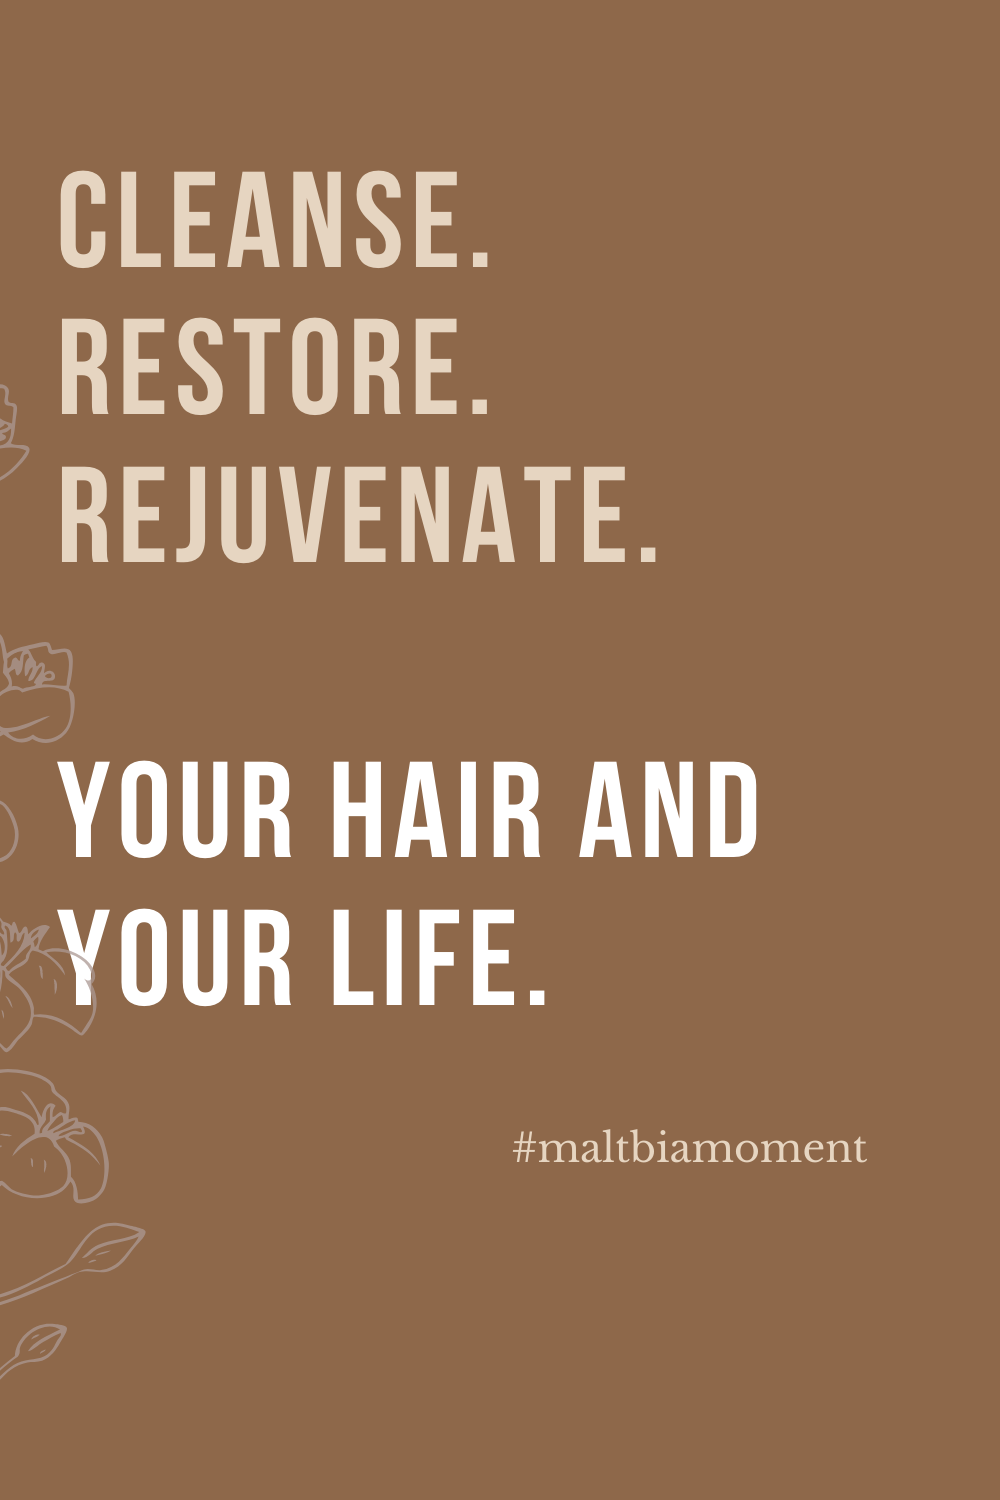 Words to live by for your hair and your life. #healthyhairjourney